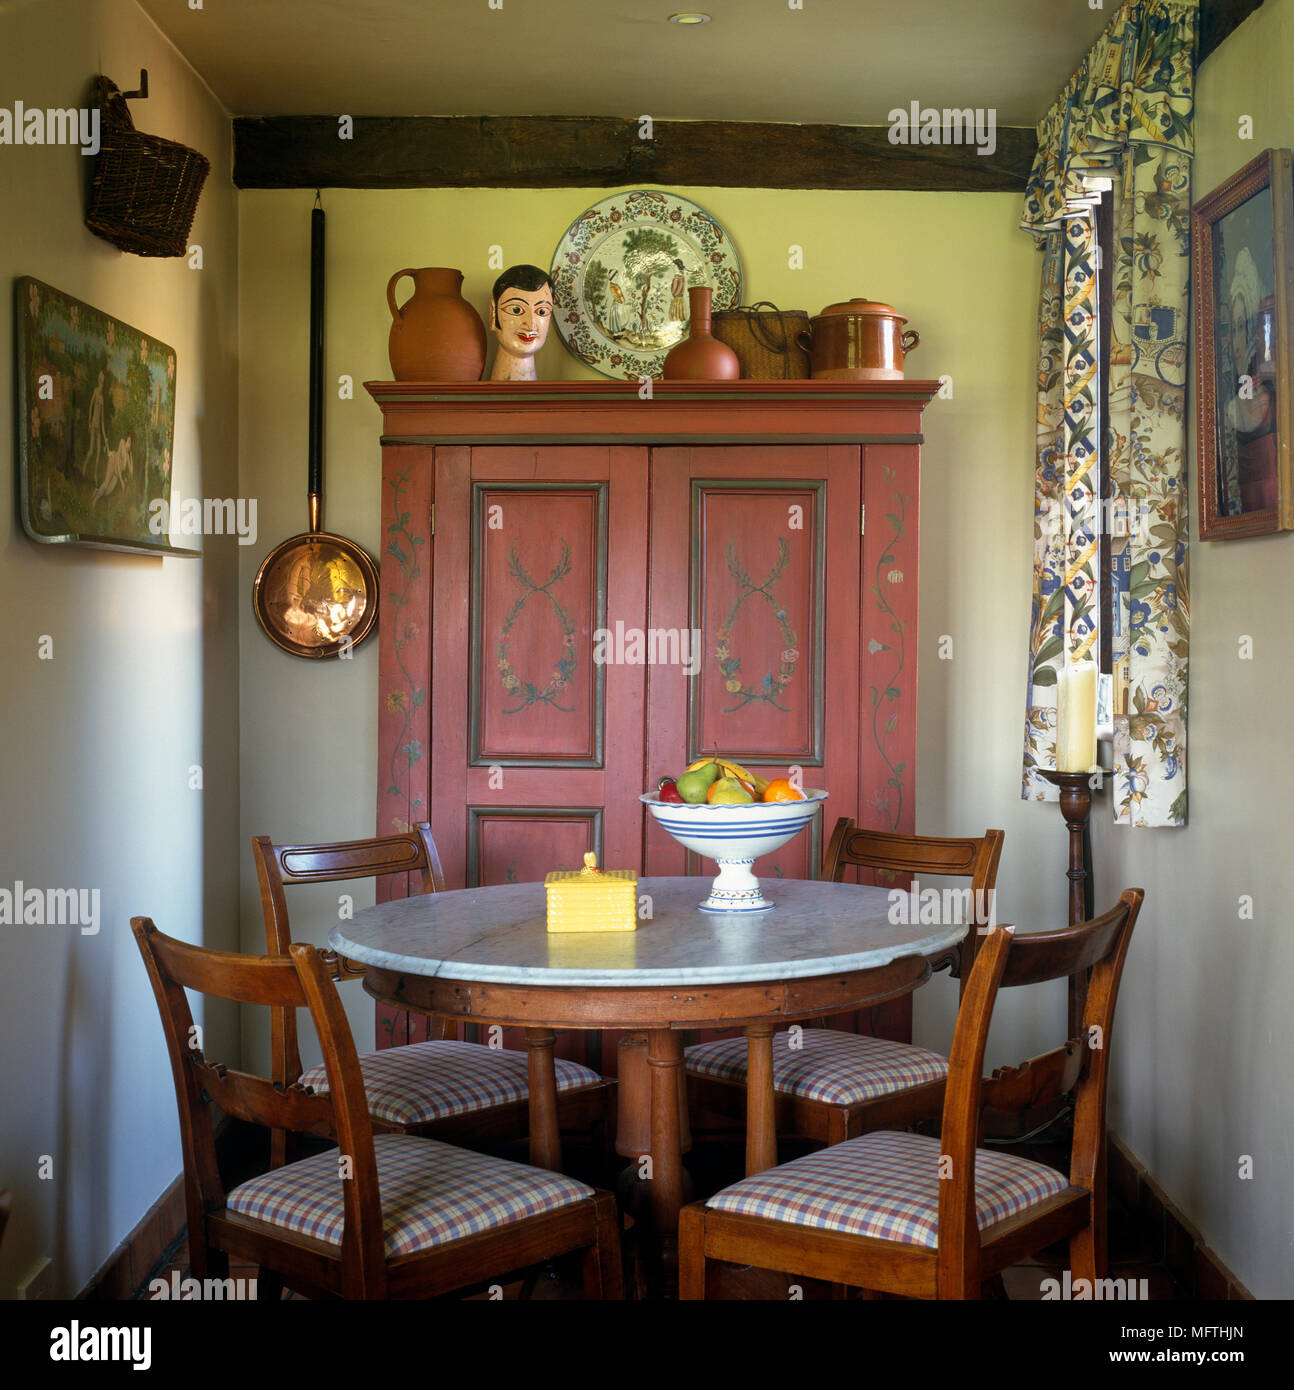 Picture of: Round Marble Top Table And Chairs In Country Dining Room Stock Photo Alamy